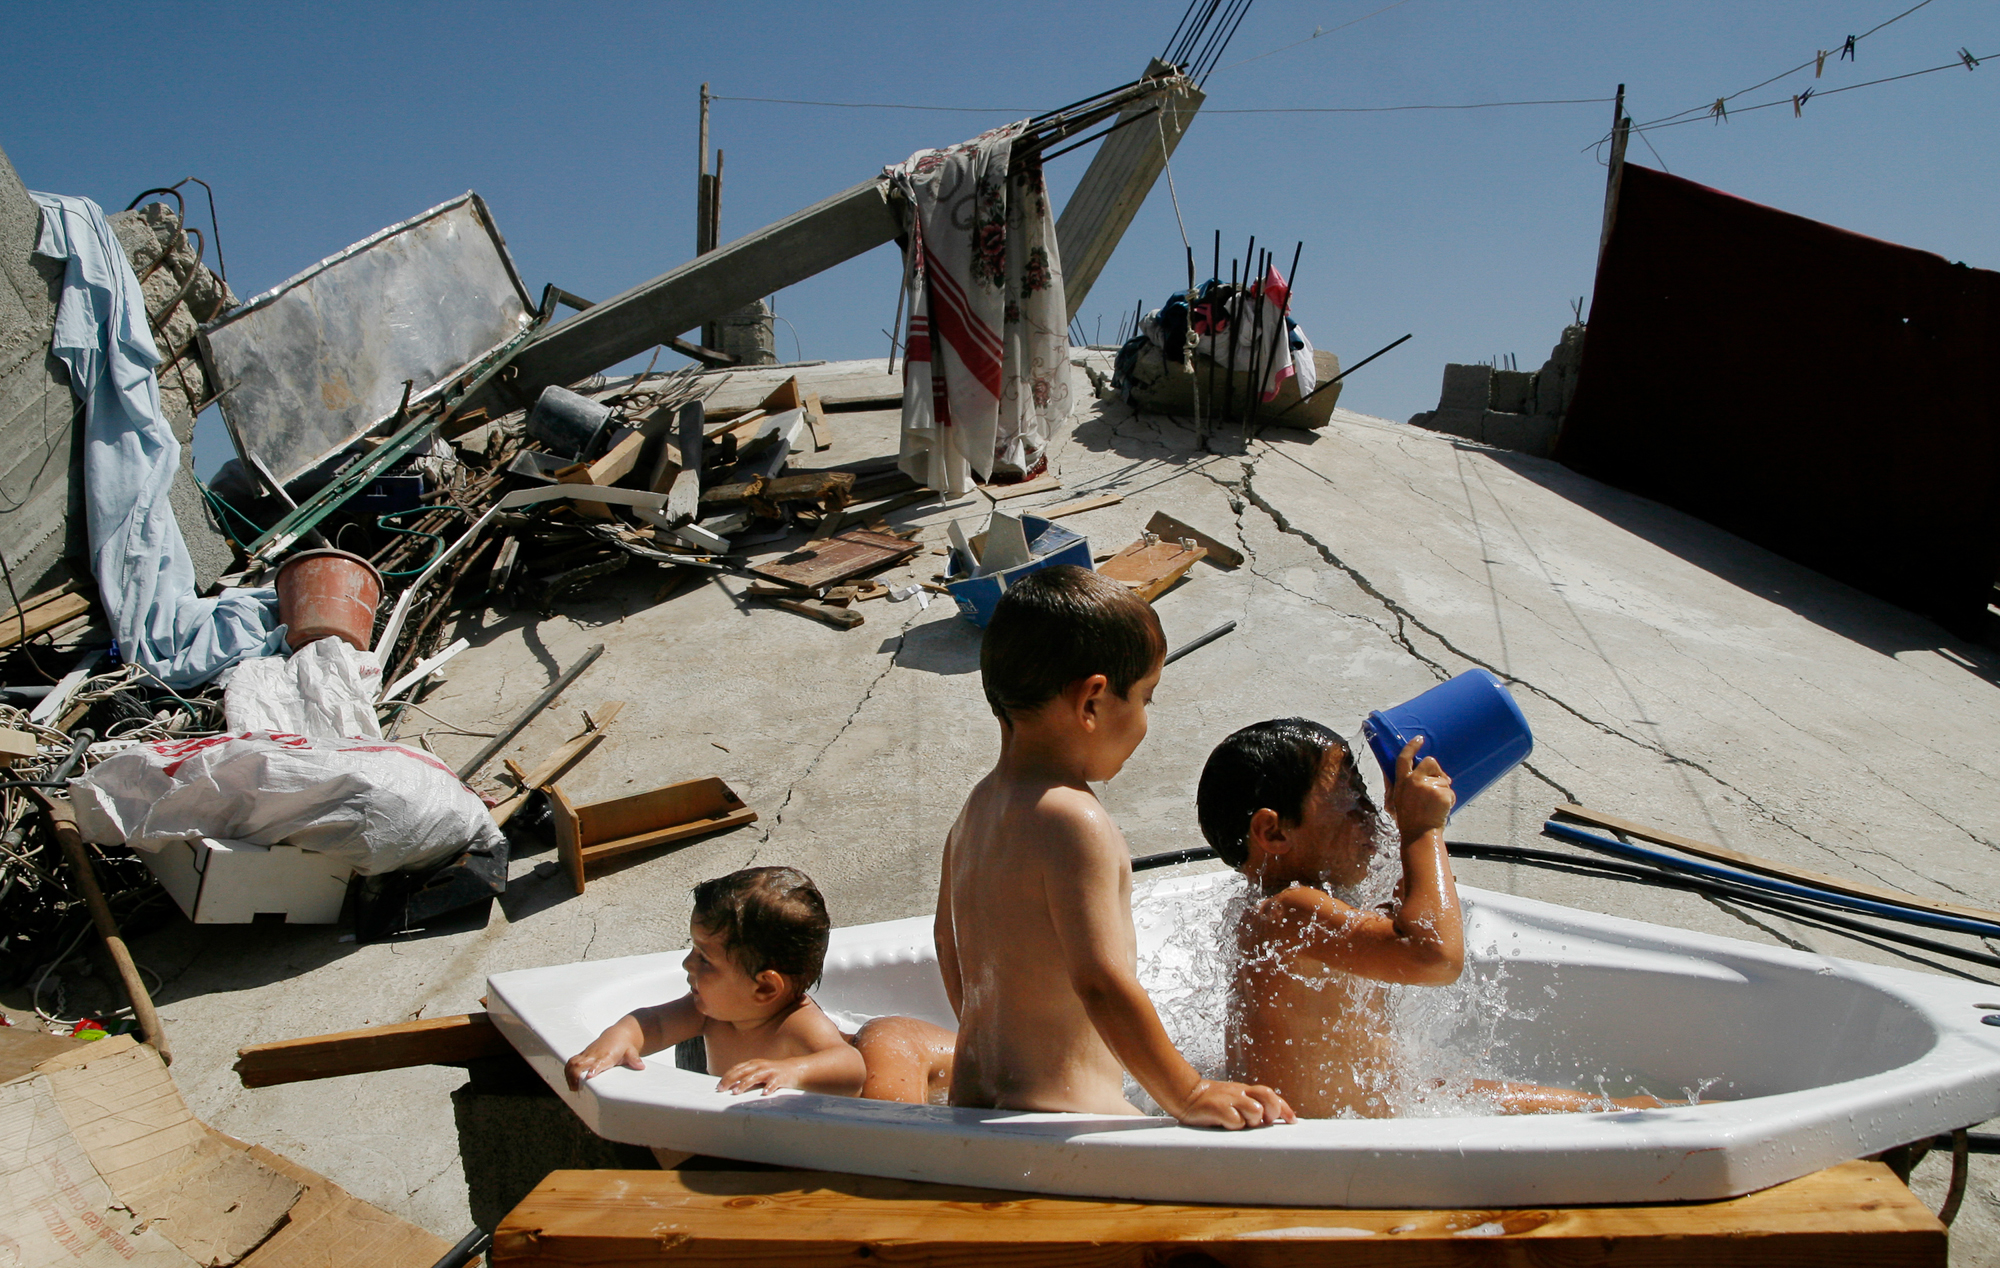 Children having a bubble bath in a Jacuzzi tub sitting atop the rubble of their house, destroyed by Israeli forces. Photo: Eman Mohammed